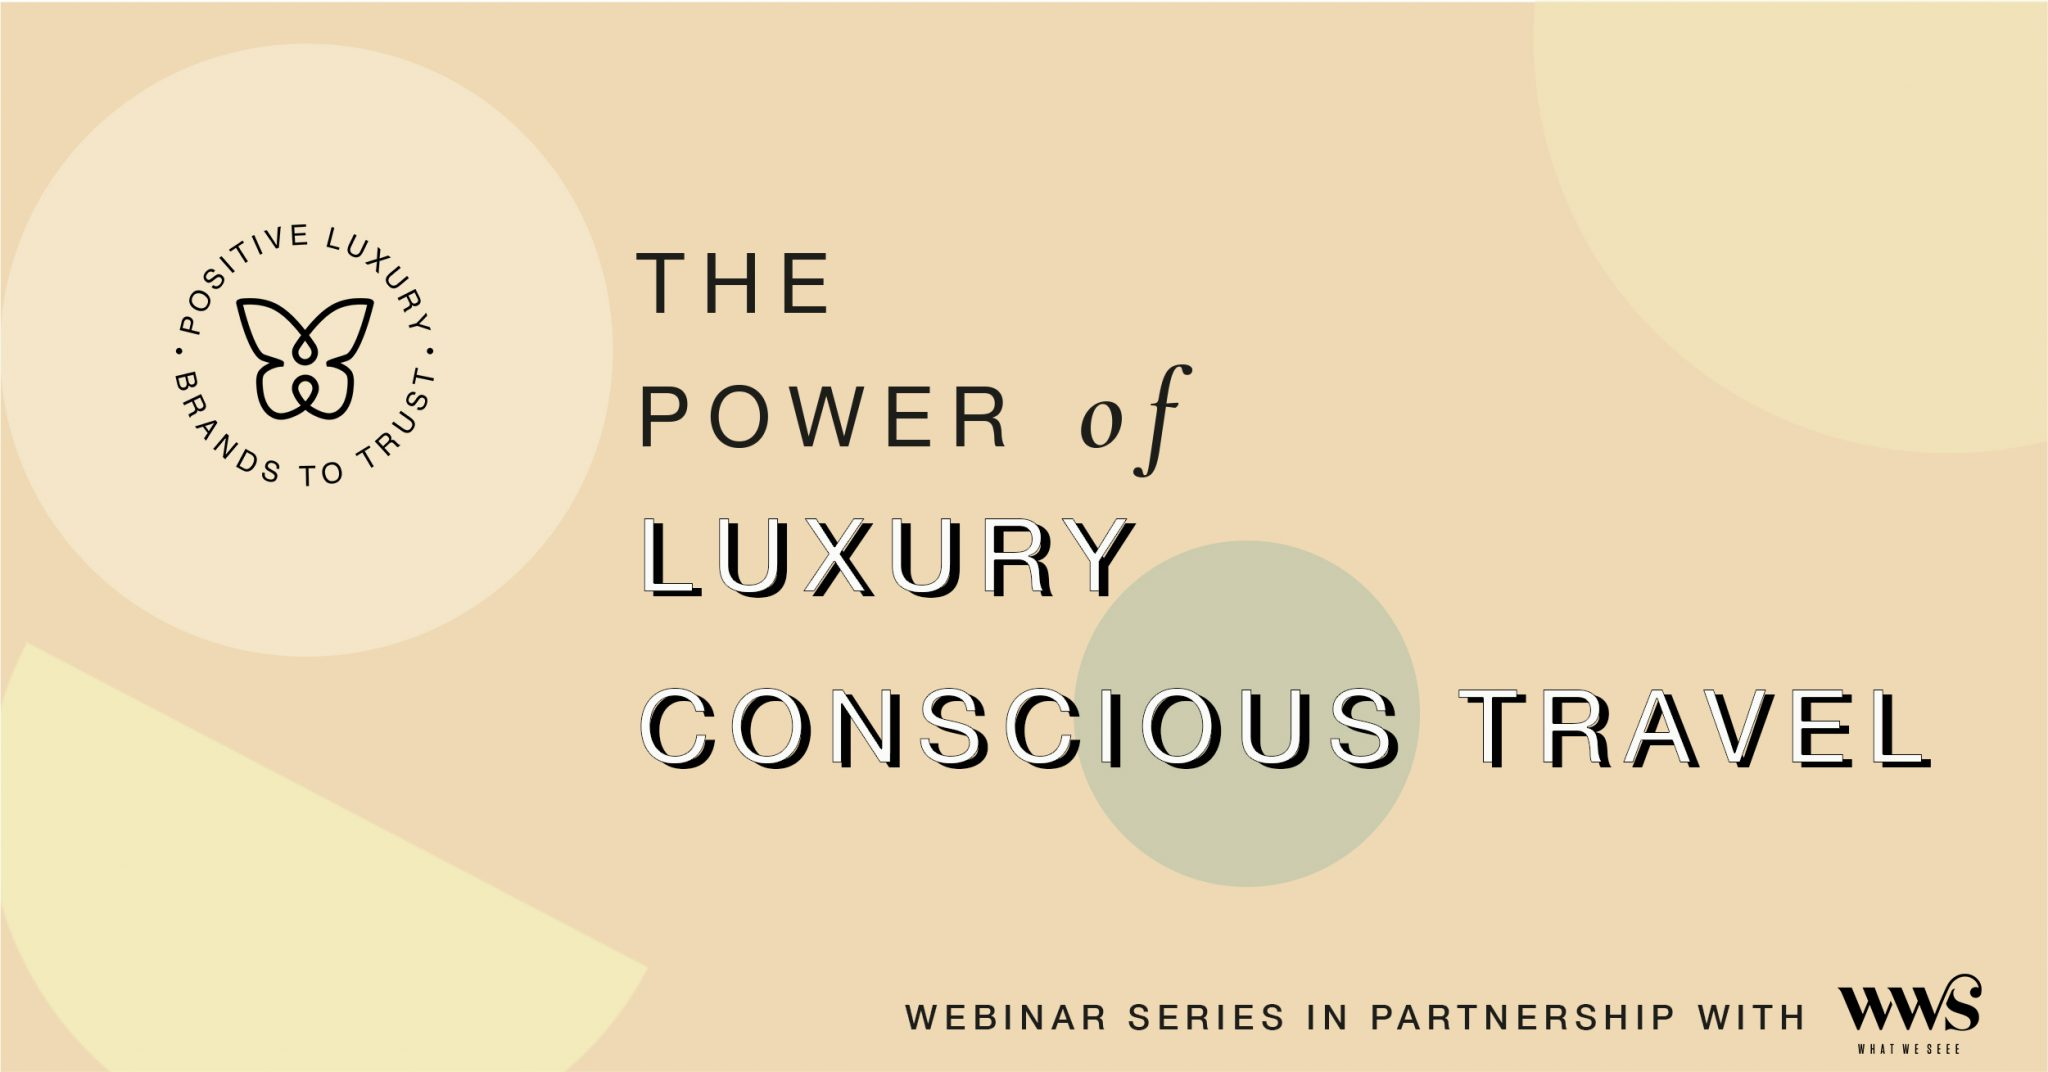 In case you missed it: Watch The Power of Luxury Conscious Travel